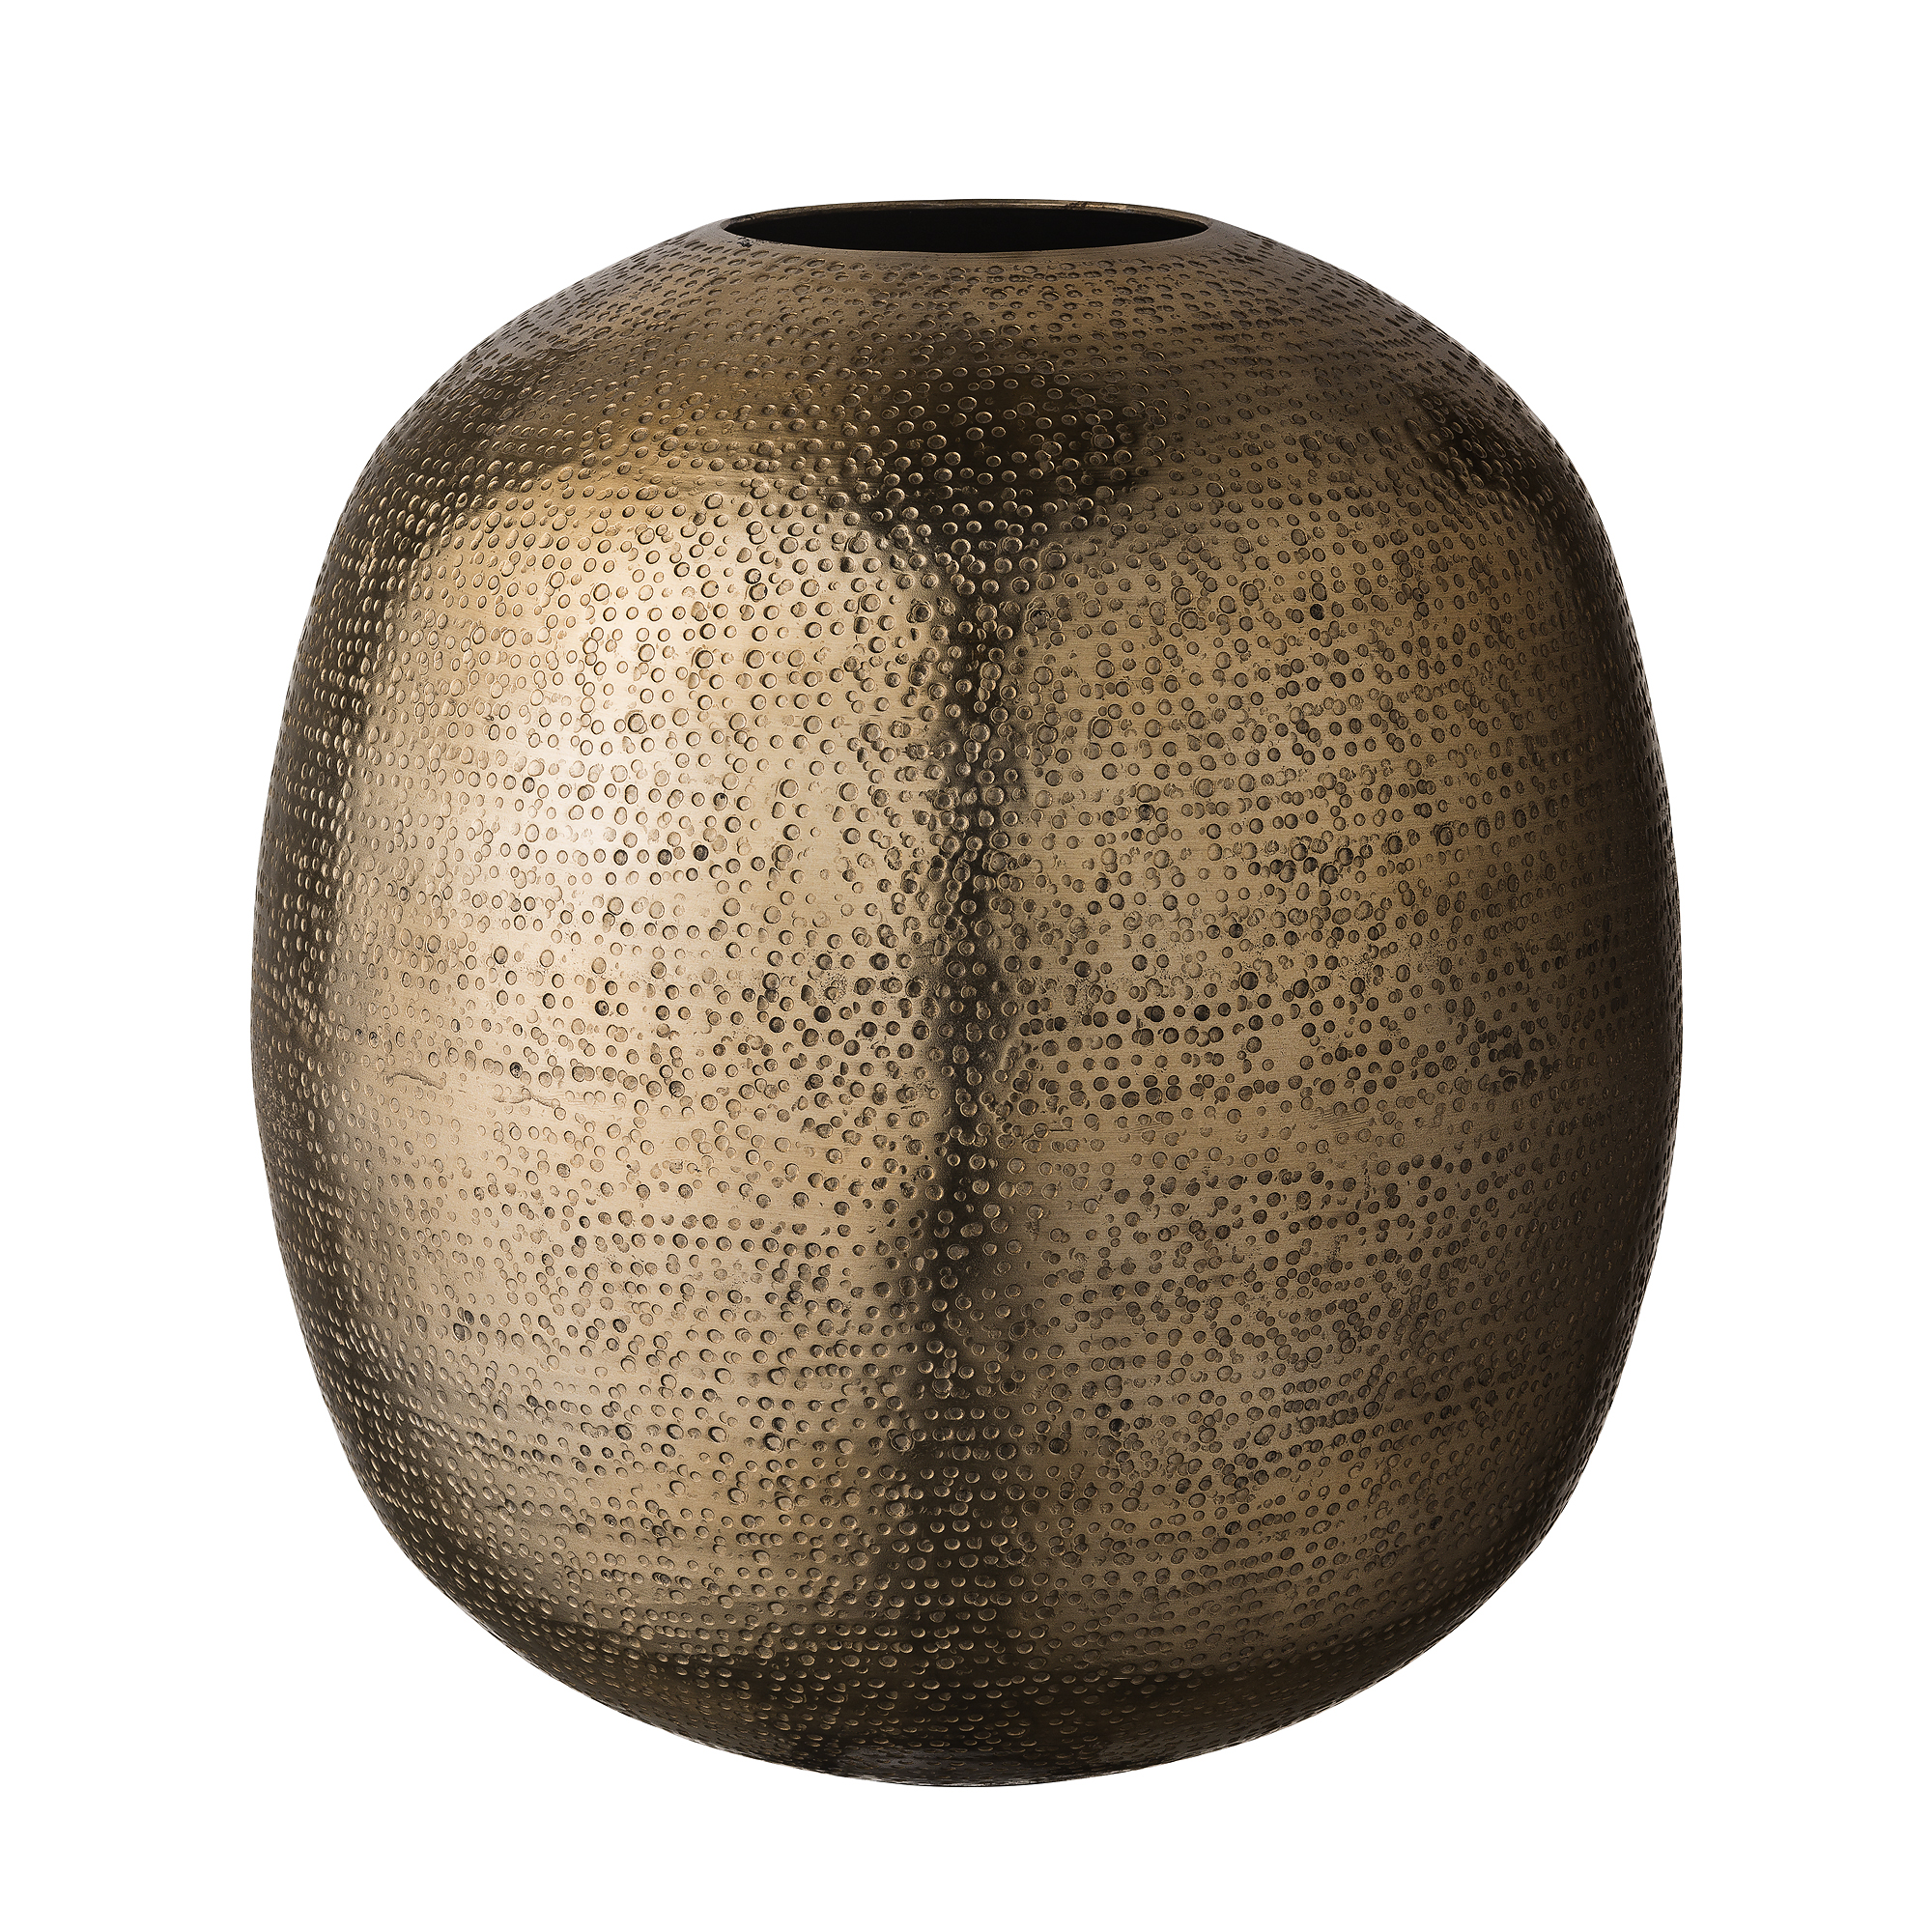 Gift gold vase made of hammered steel from day home